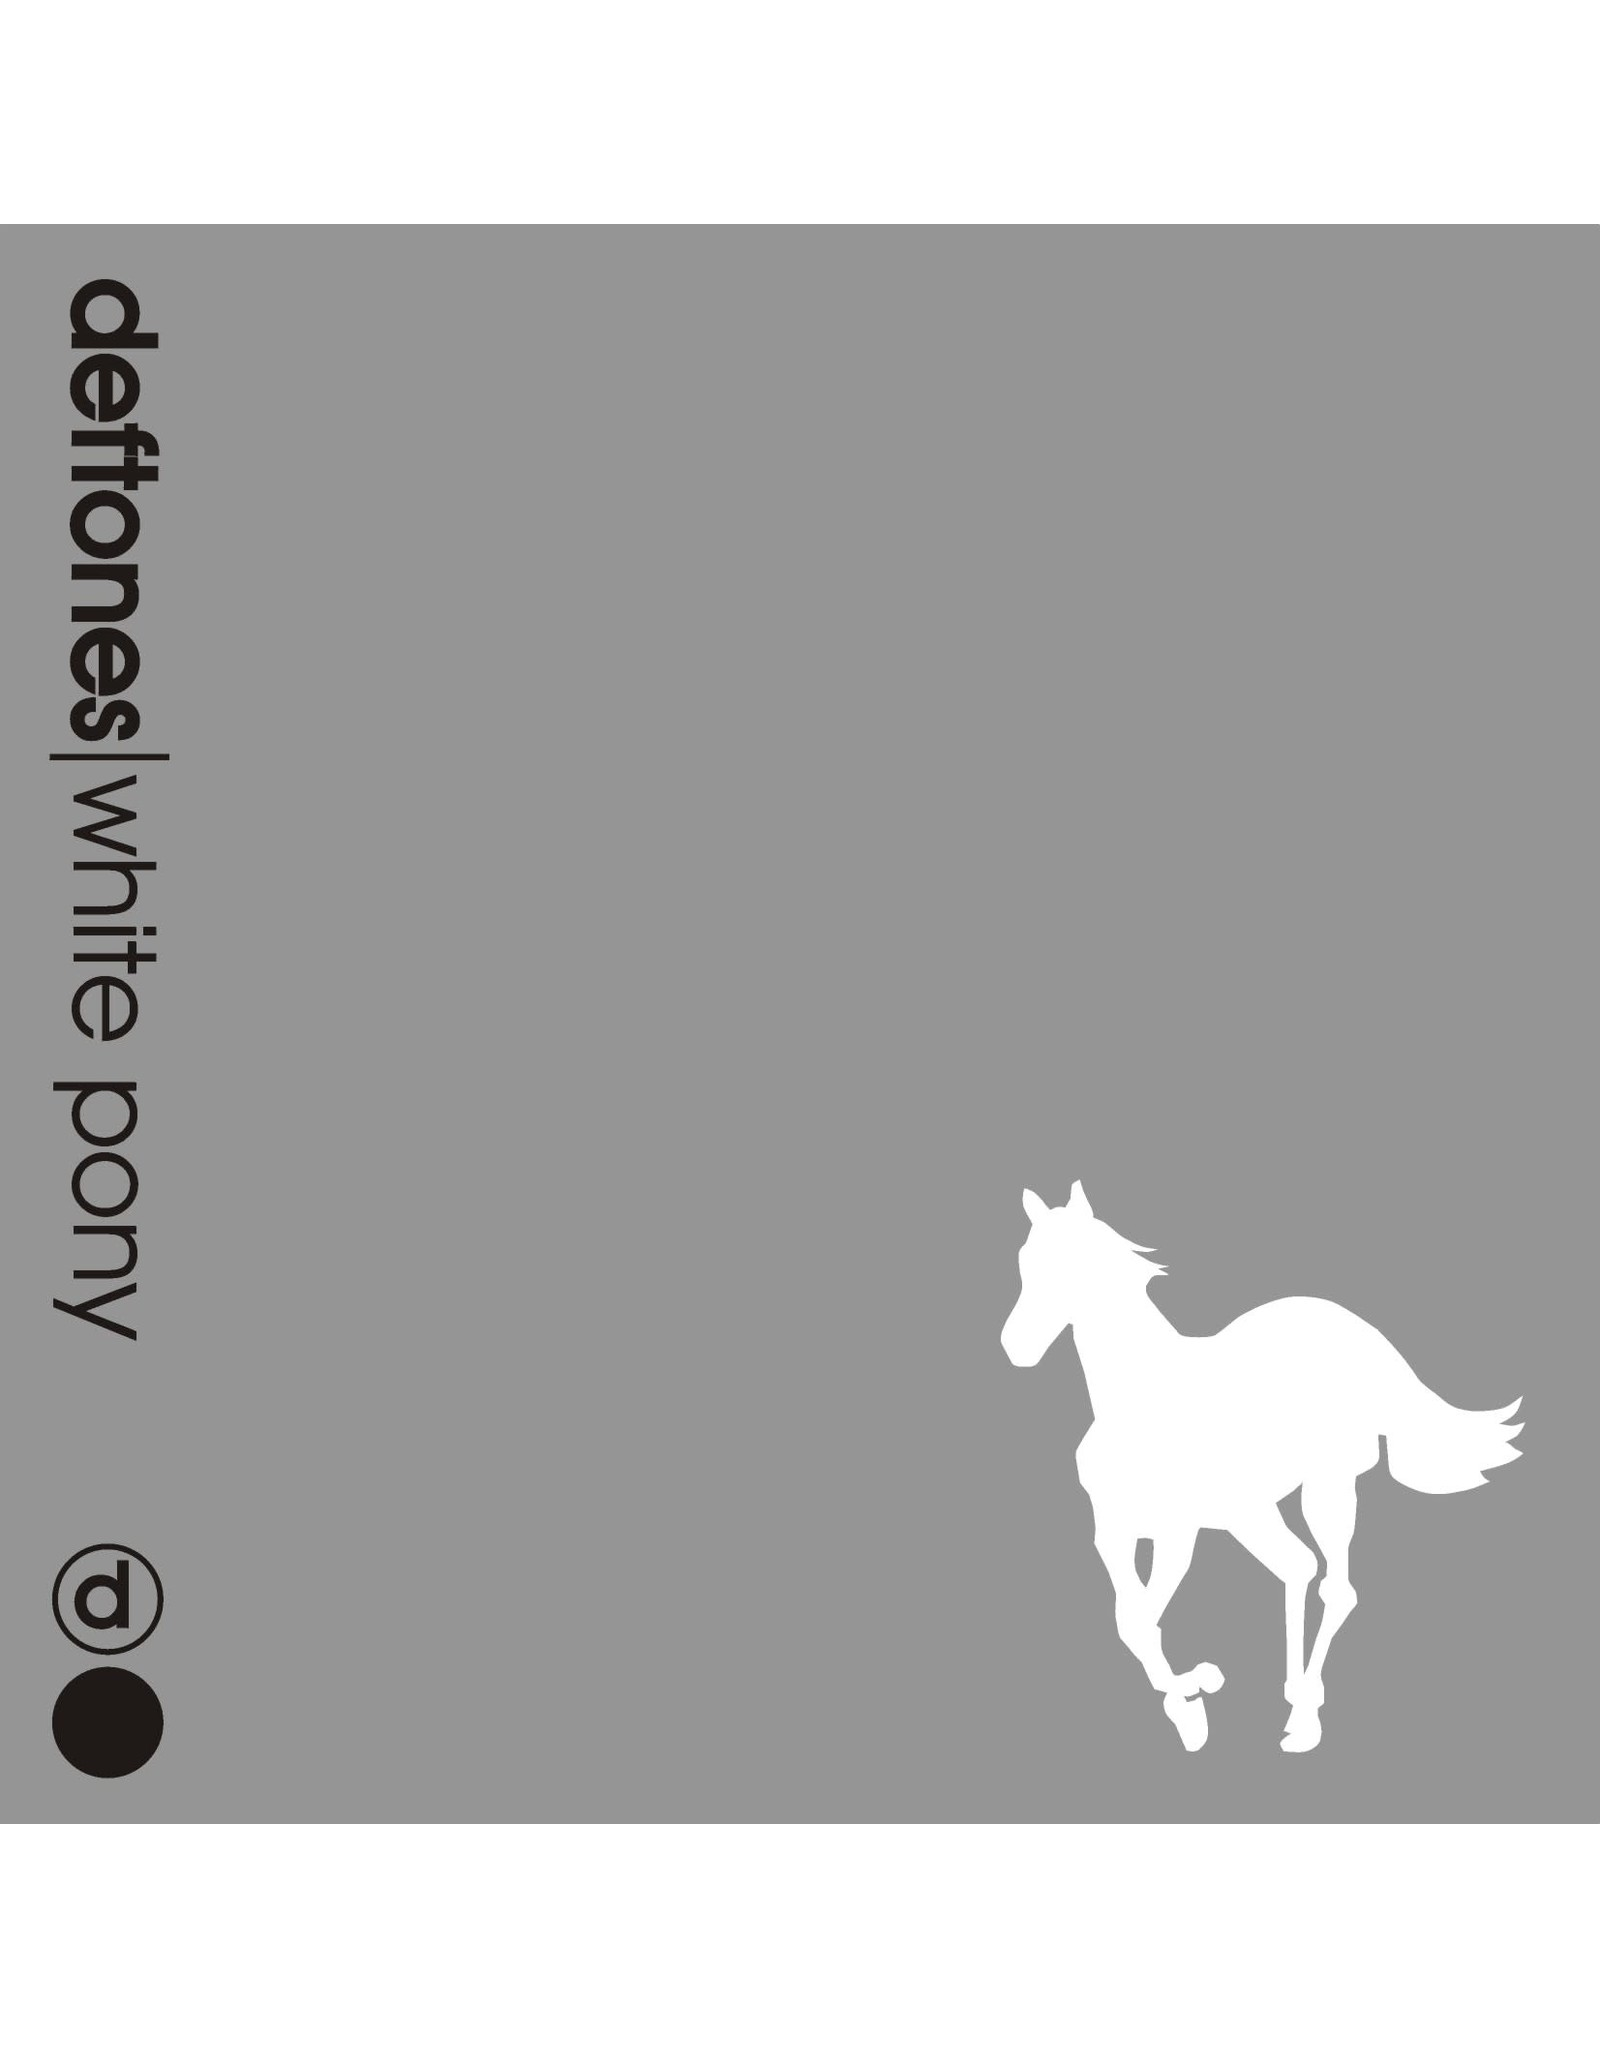 Deftones - White Pony (10th Anniversary)